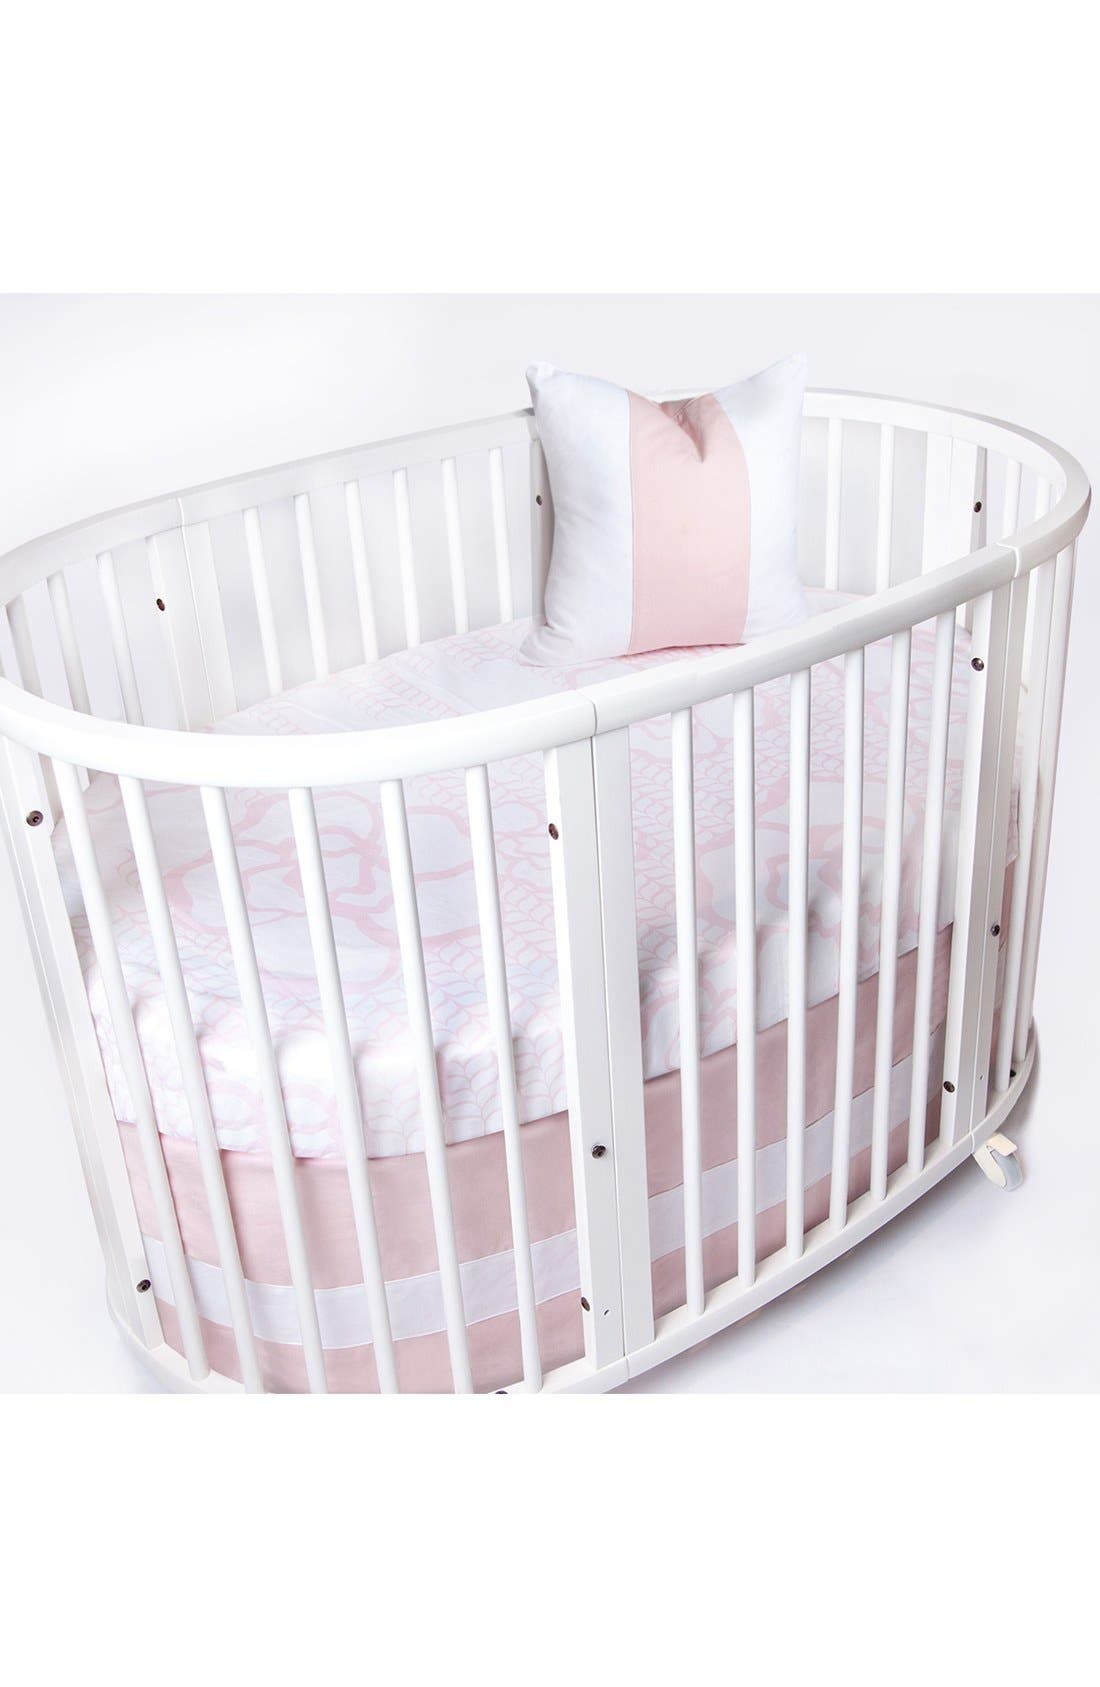 Main Image - Oilo Woven Band Crib Skirt for Stokke Sleepi Crib